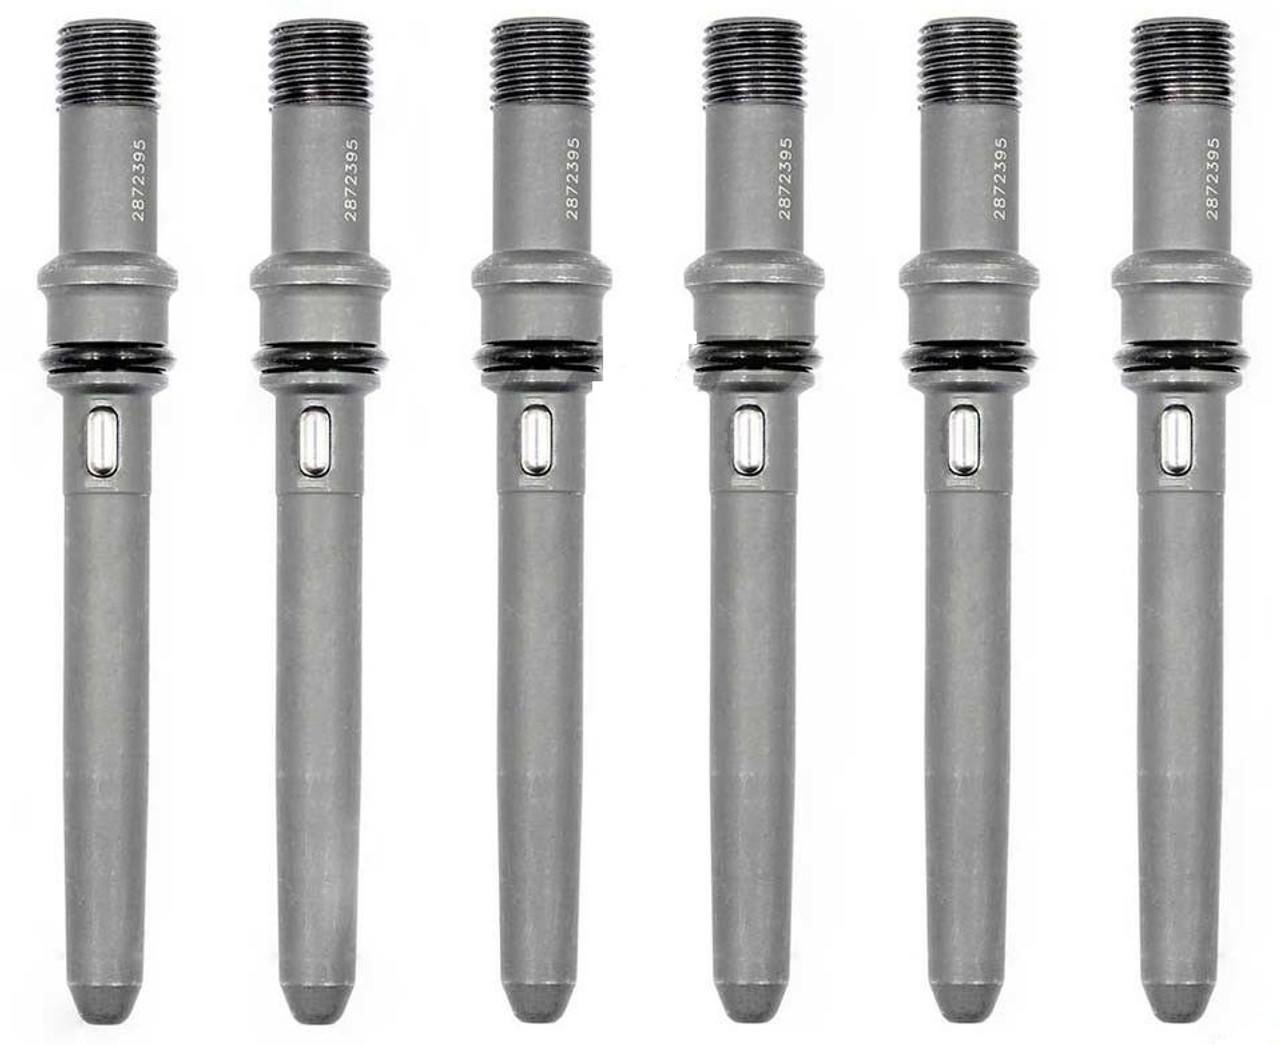 1998 5 2002 DODGE CUMMINS 5 9L 24 VALVE WITH VP44 PUMP INJECTOR CONNECTOR  TUBES SET OF 6